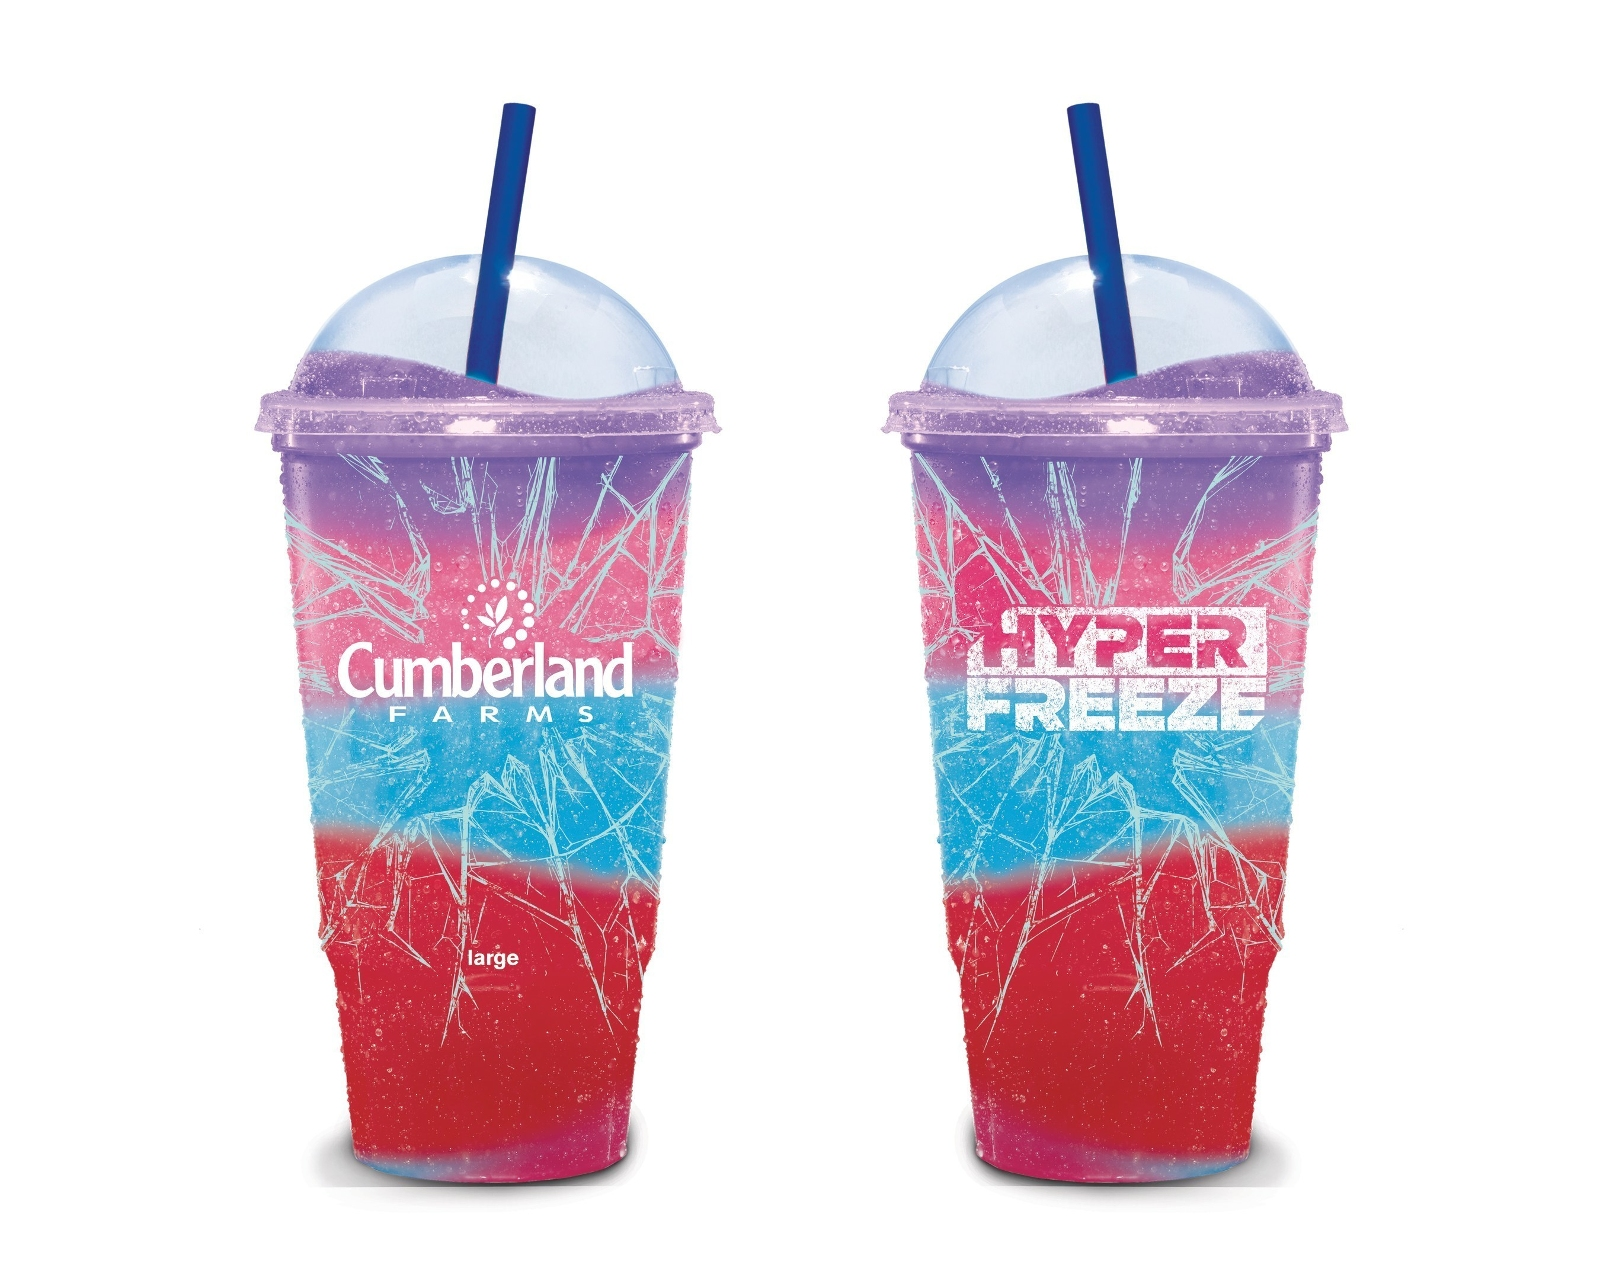 Cumberland Farms Announces Release of Hyperfreeze